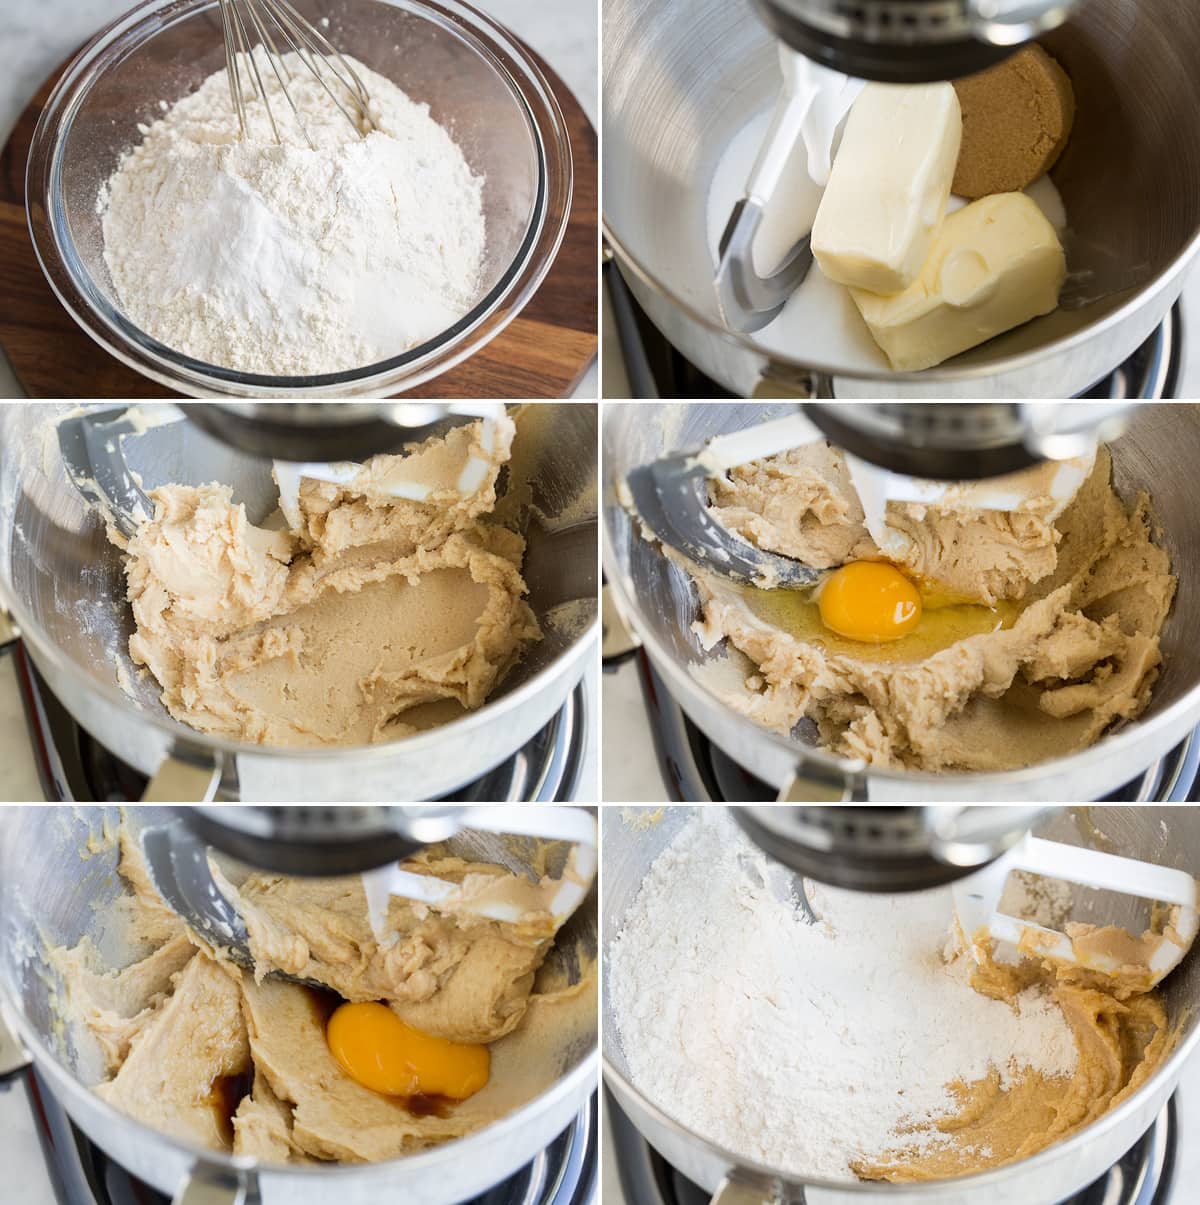 Collage of six images showing first six steps to preparing homemade snickerdoodle cookie dough. Shows whisking dry ingredients in glass bowl. Then mixing butter sugars in stand mixer, and blending in egg and yolk. And last mixing in flour mixture.